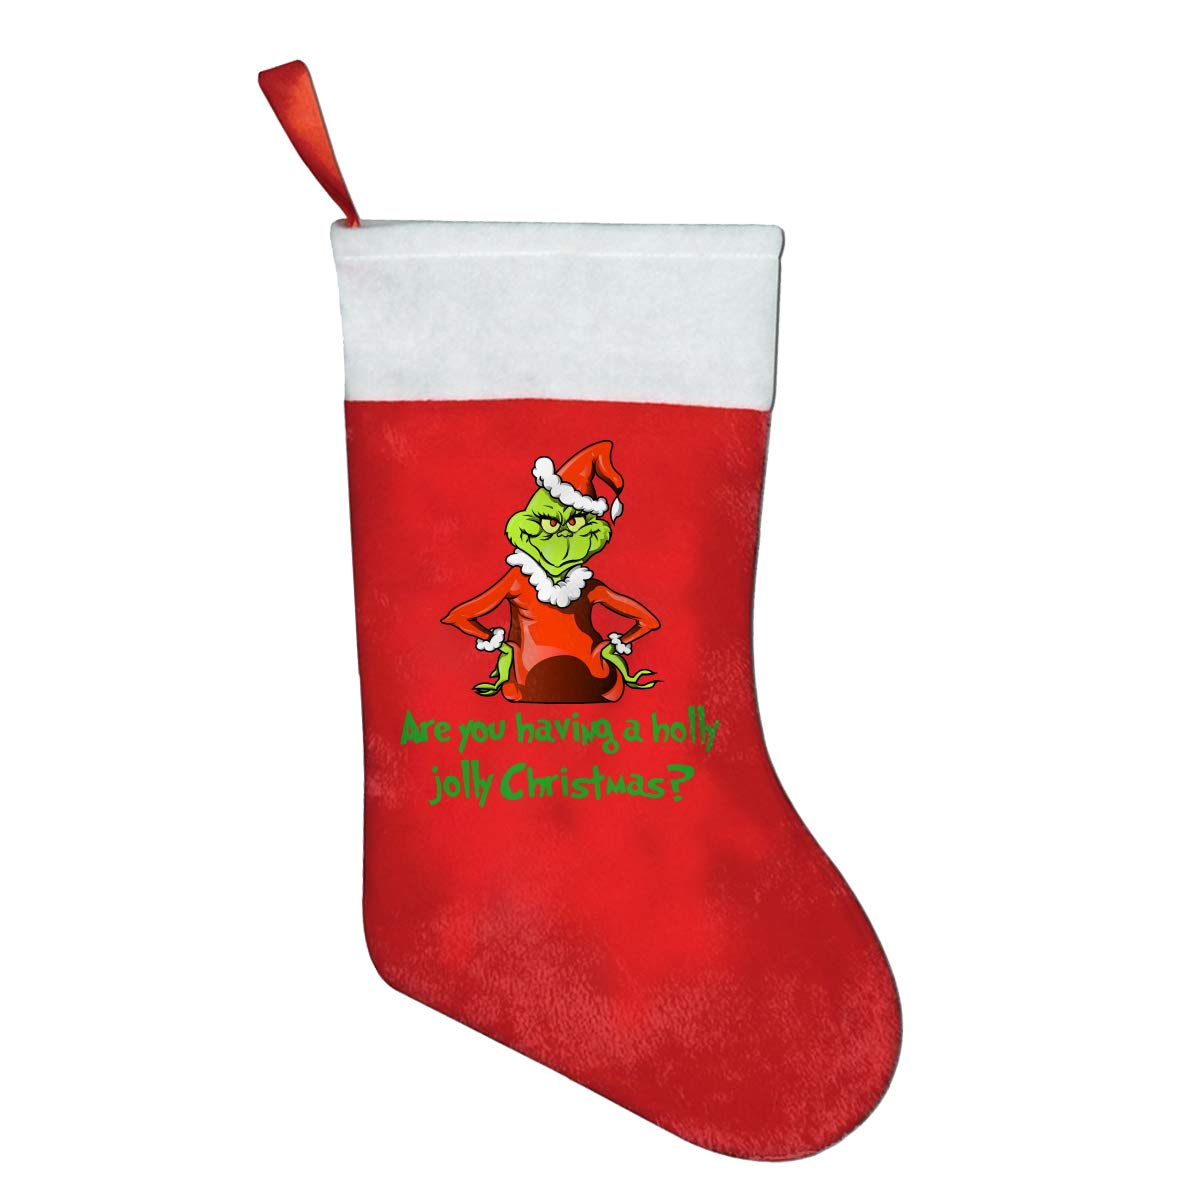 JANESHOOP The Grinch Stole Christmas Classic X-mas Christmas Socks Gift Bags Gift Bags Christmas Decorations Santa Claus Socks Candy Bags Red